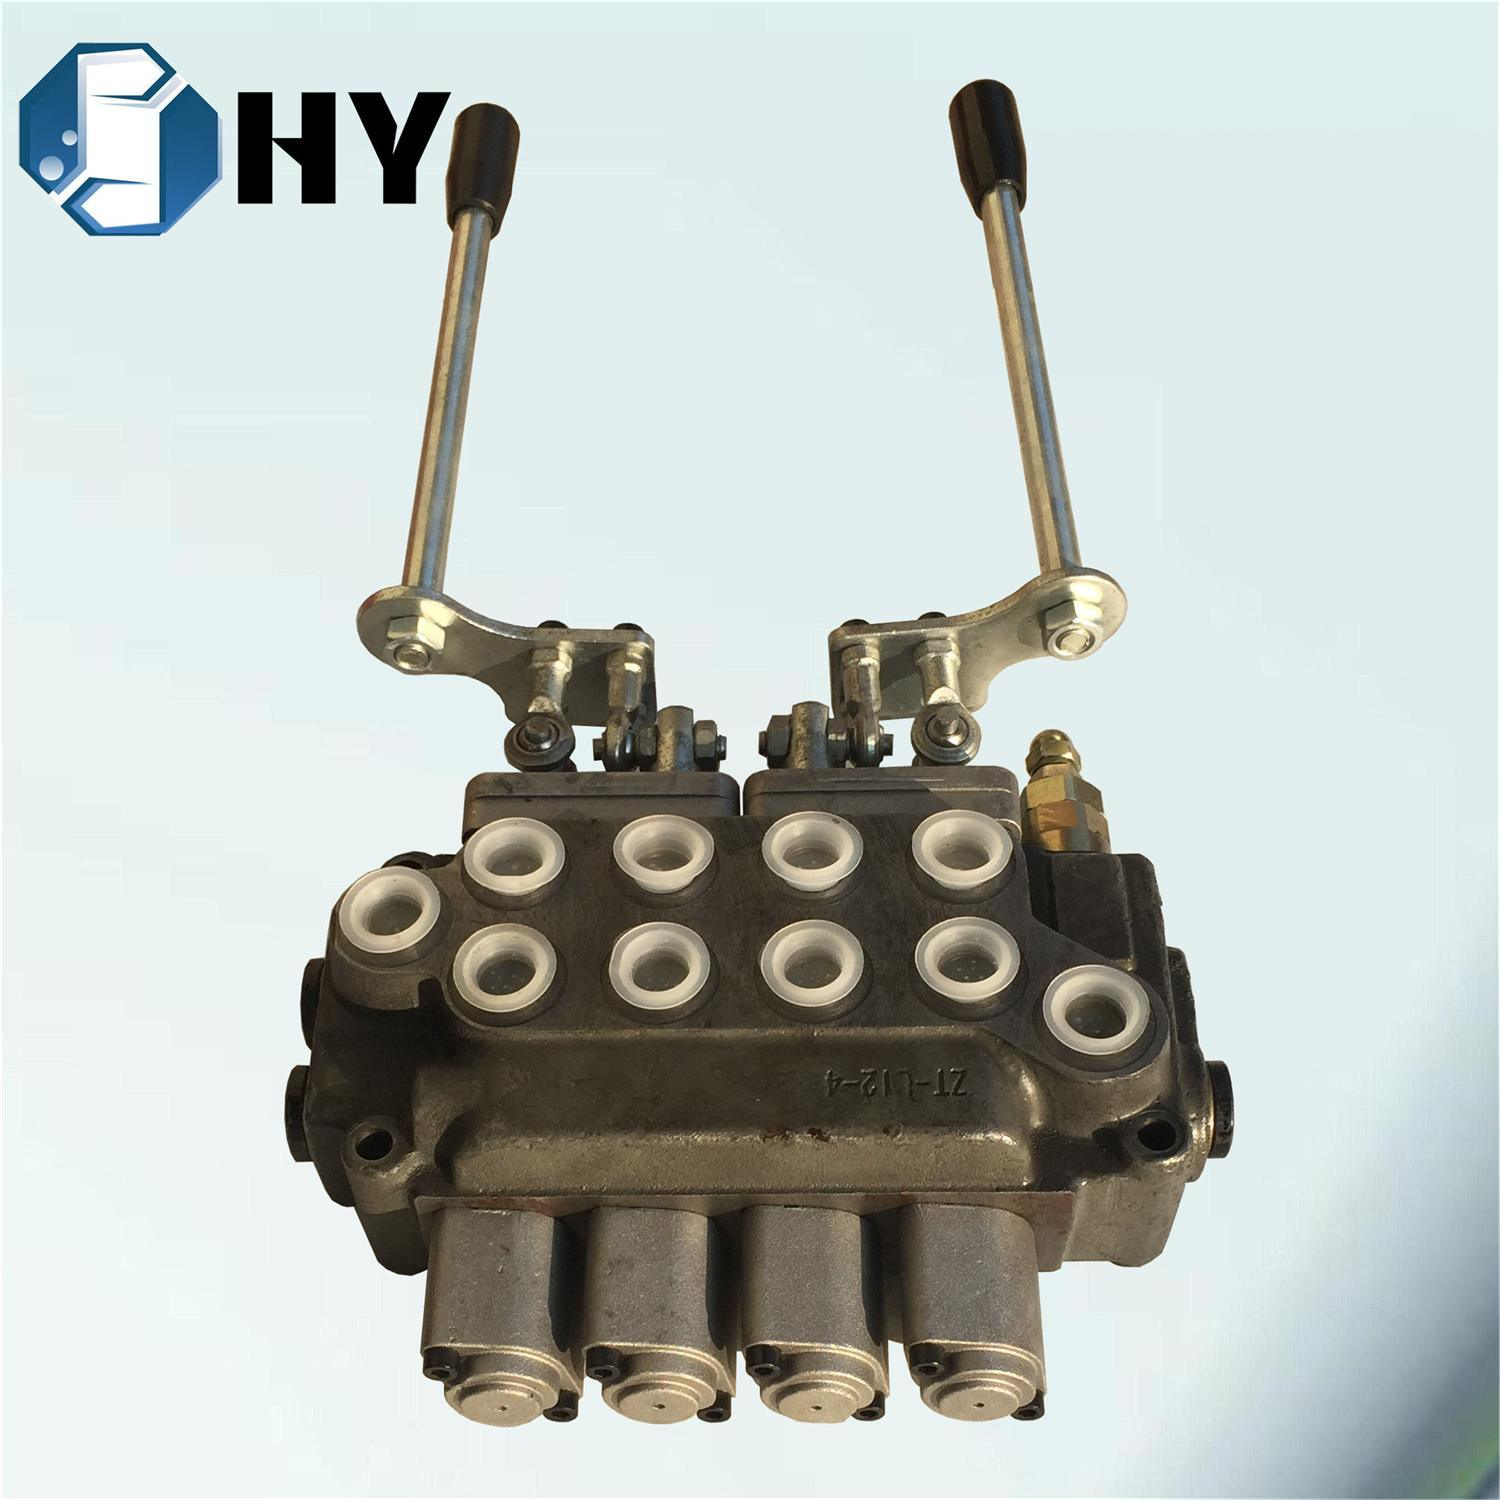 4 Spool Hydraulic Multiple Monoblock Valve for Wagon Tremie OEM